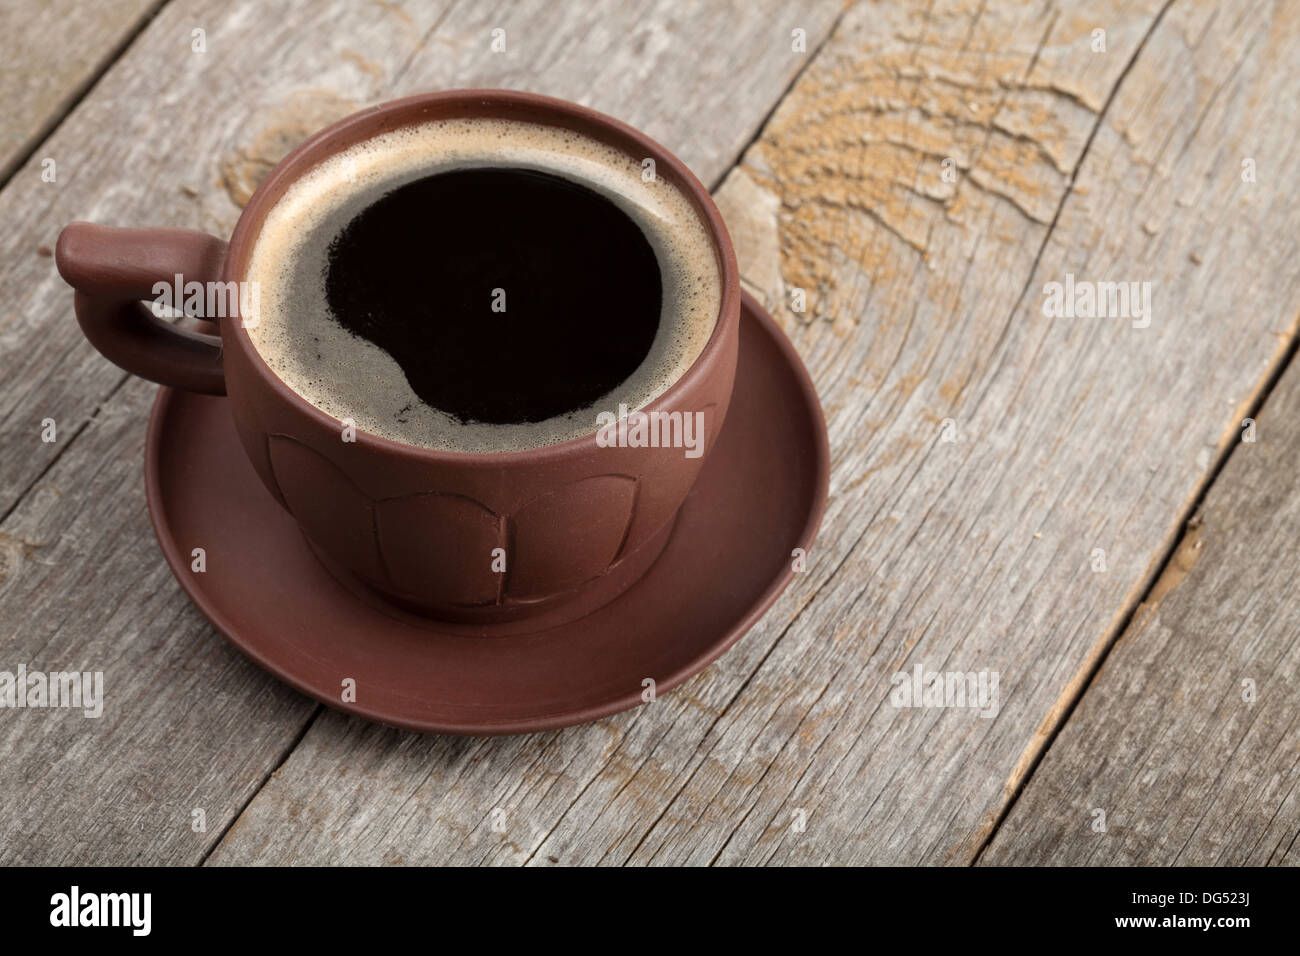 Coffee cup with spices on wooden table texture - Stock Image